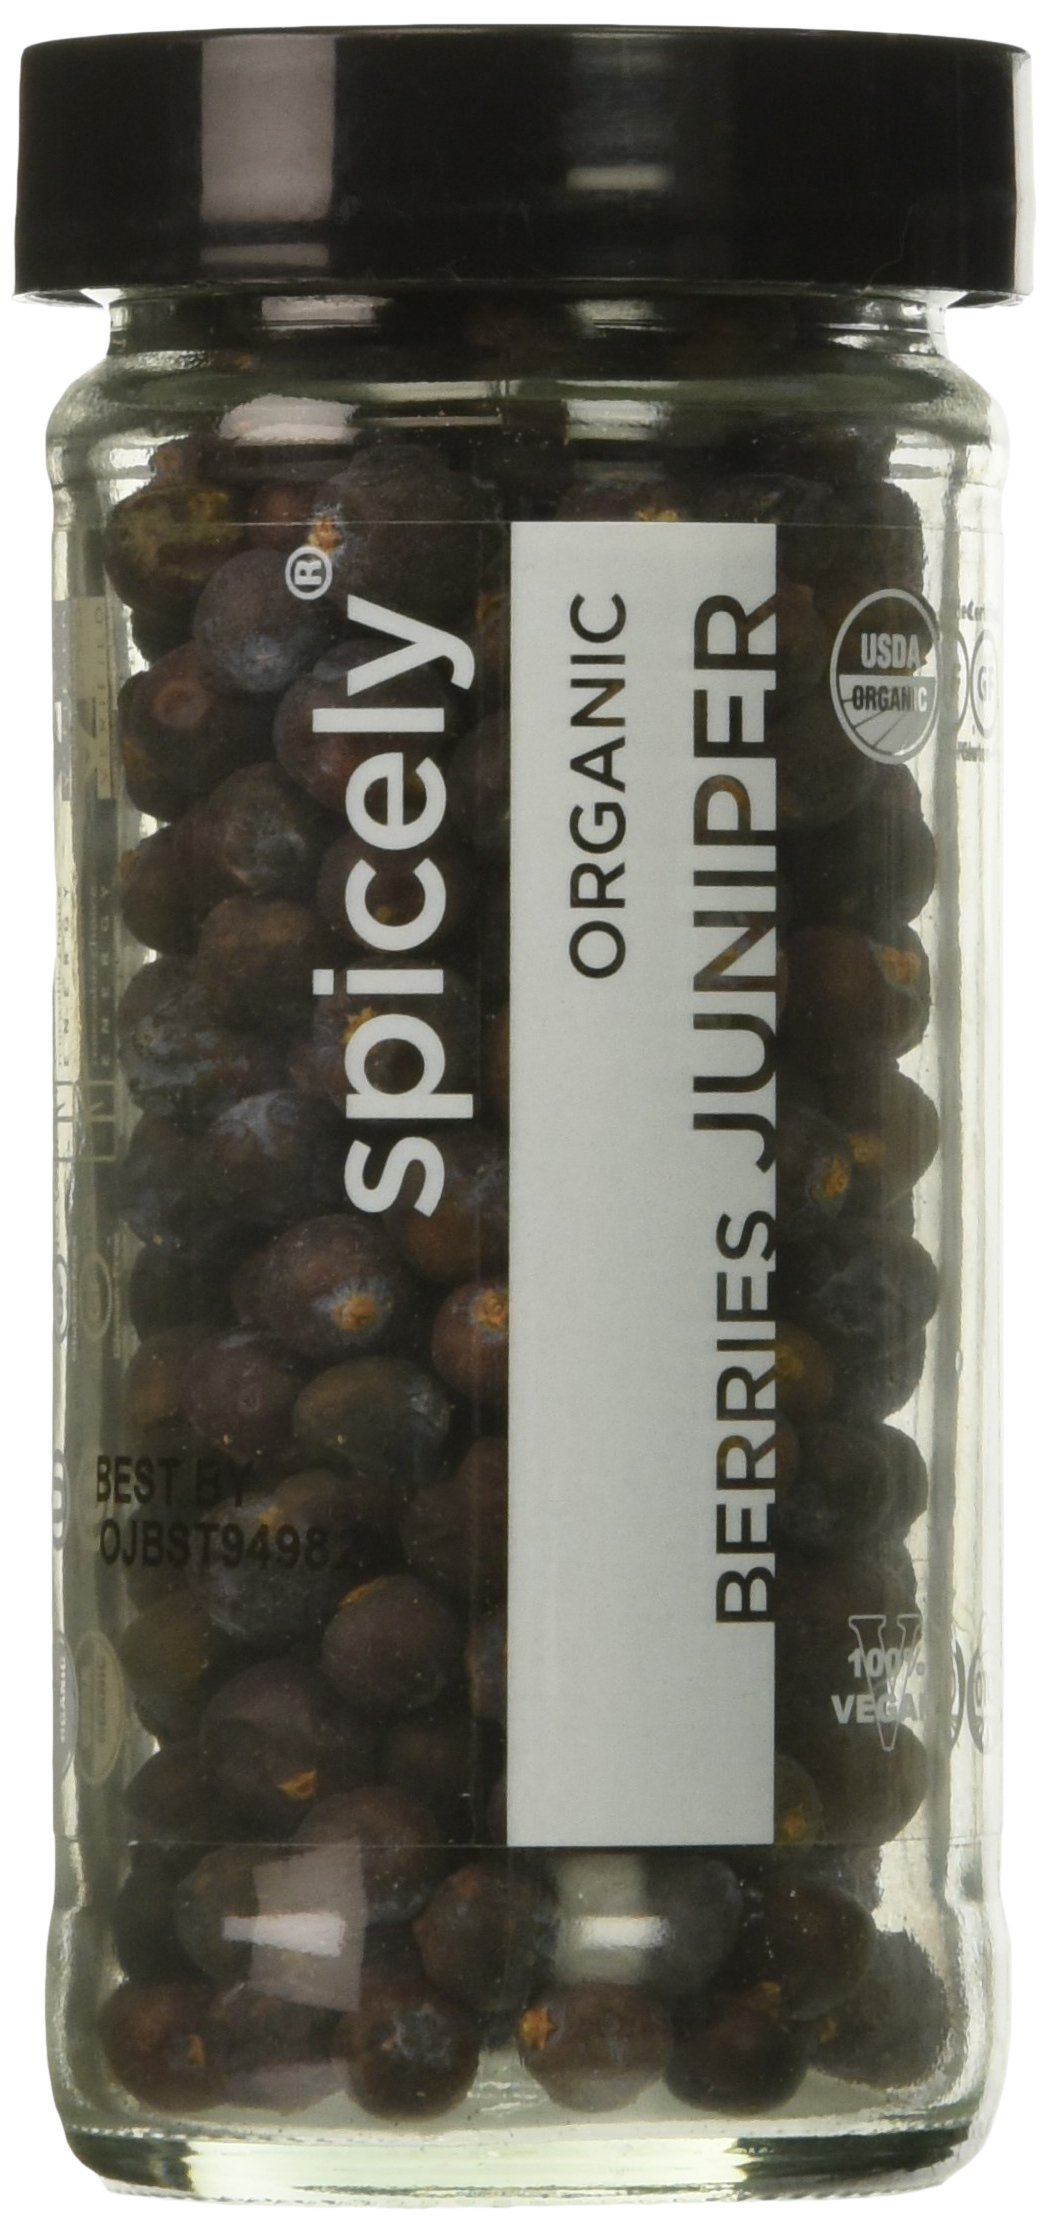 SPICELY Jar Organic Juniper Berries, 1.1 OZ